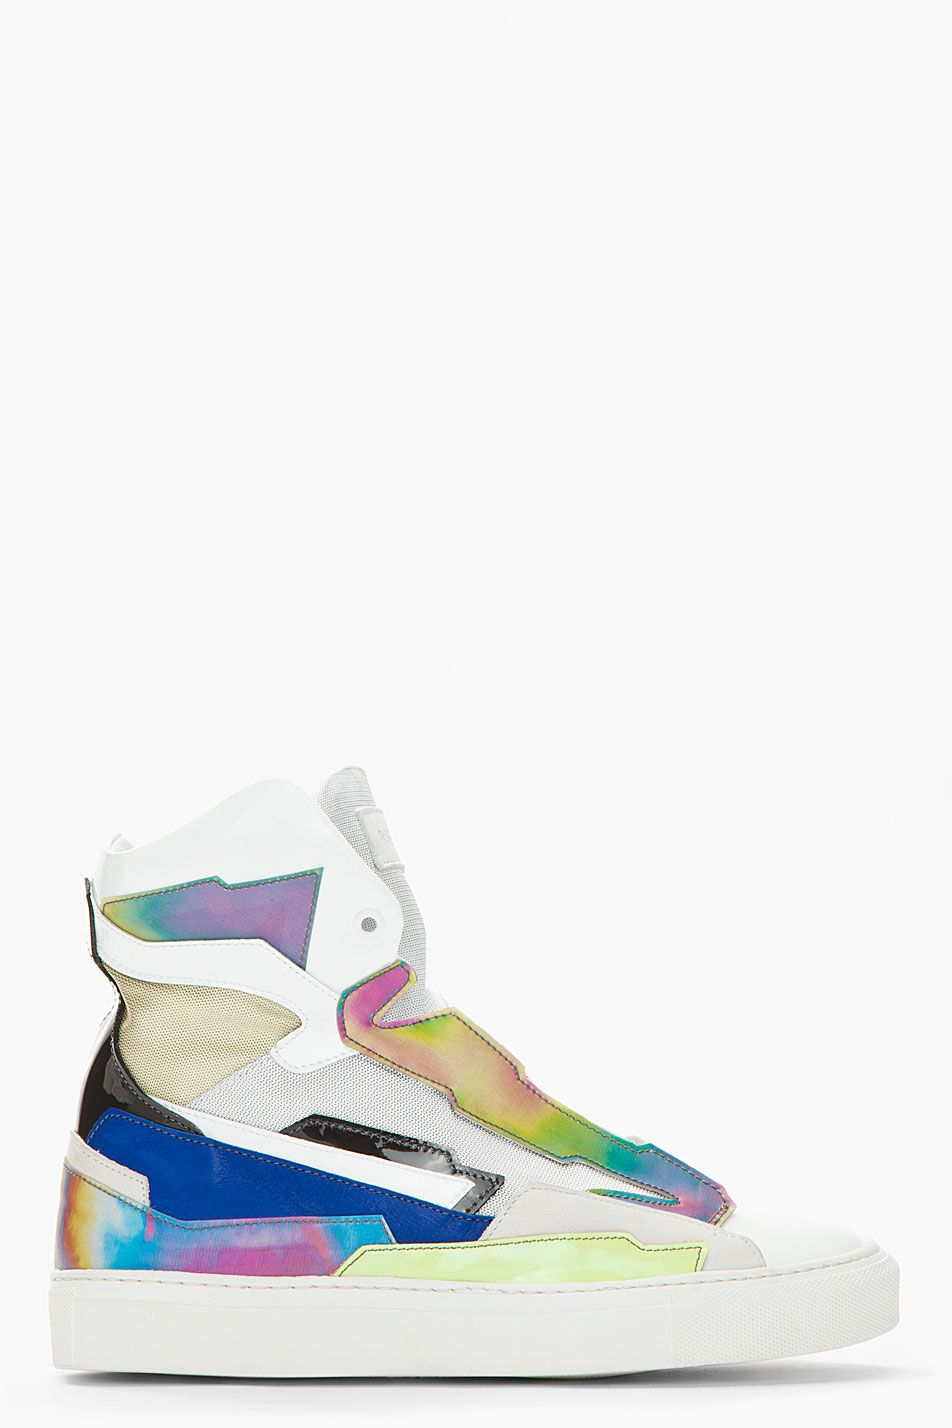 classic fit 269c5 2cf7c RAF SIMONS White  Blue Leather Holographic Space Sneakers